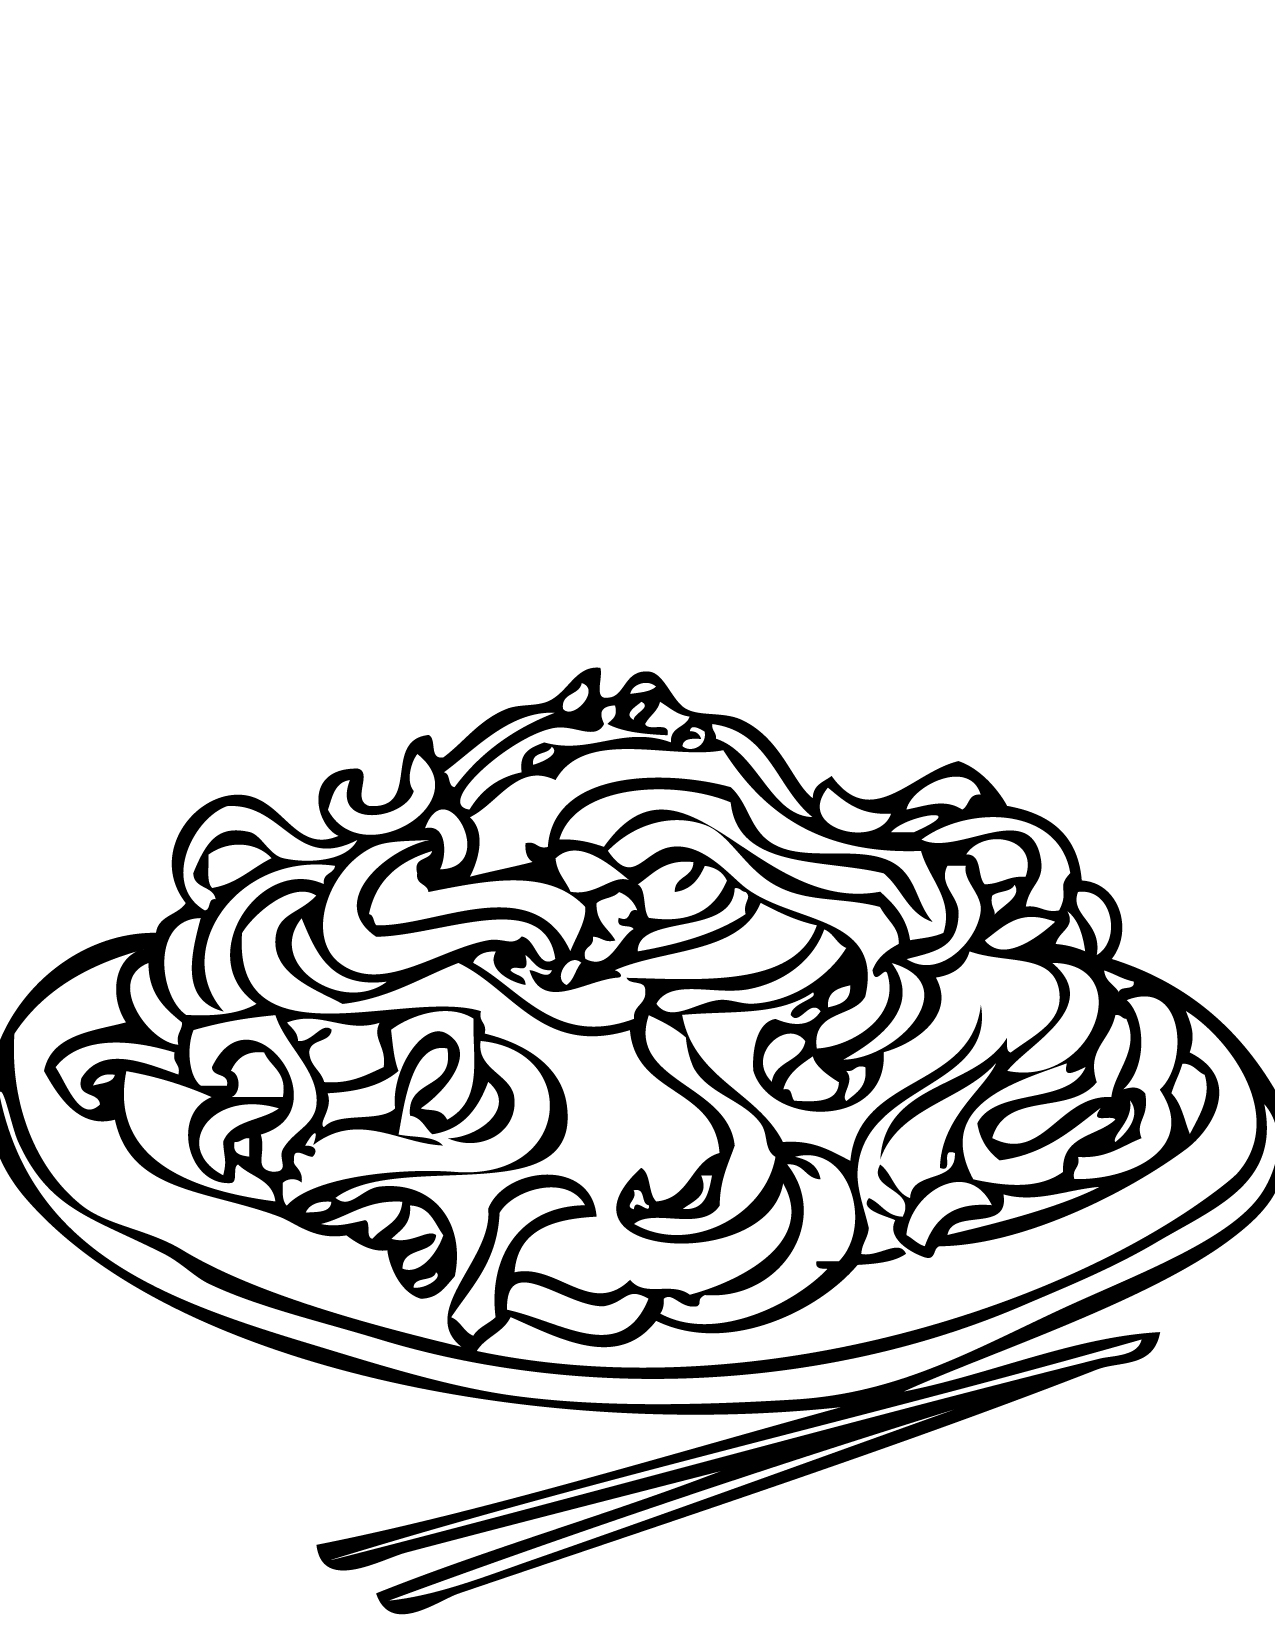 1275x1650 Chow Mein Coloring Page